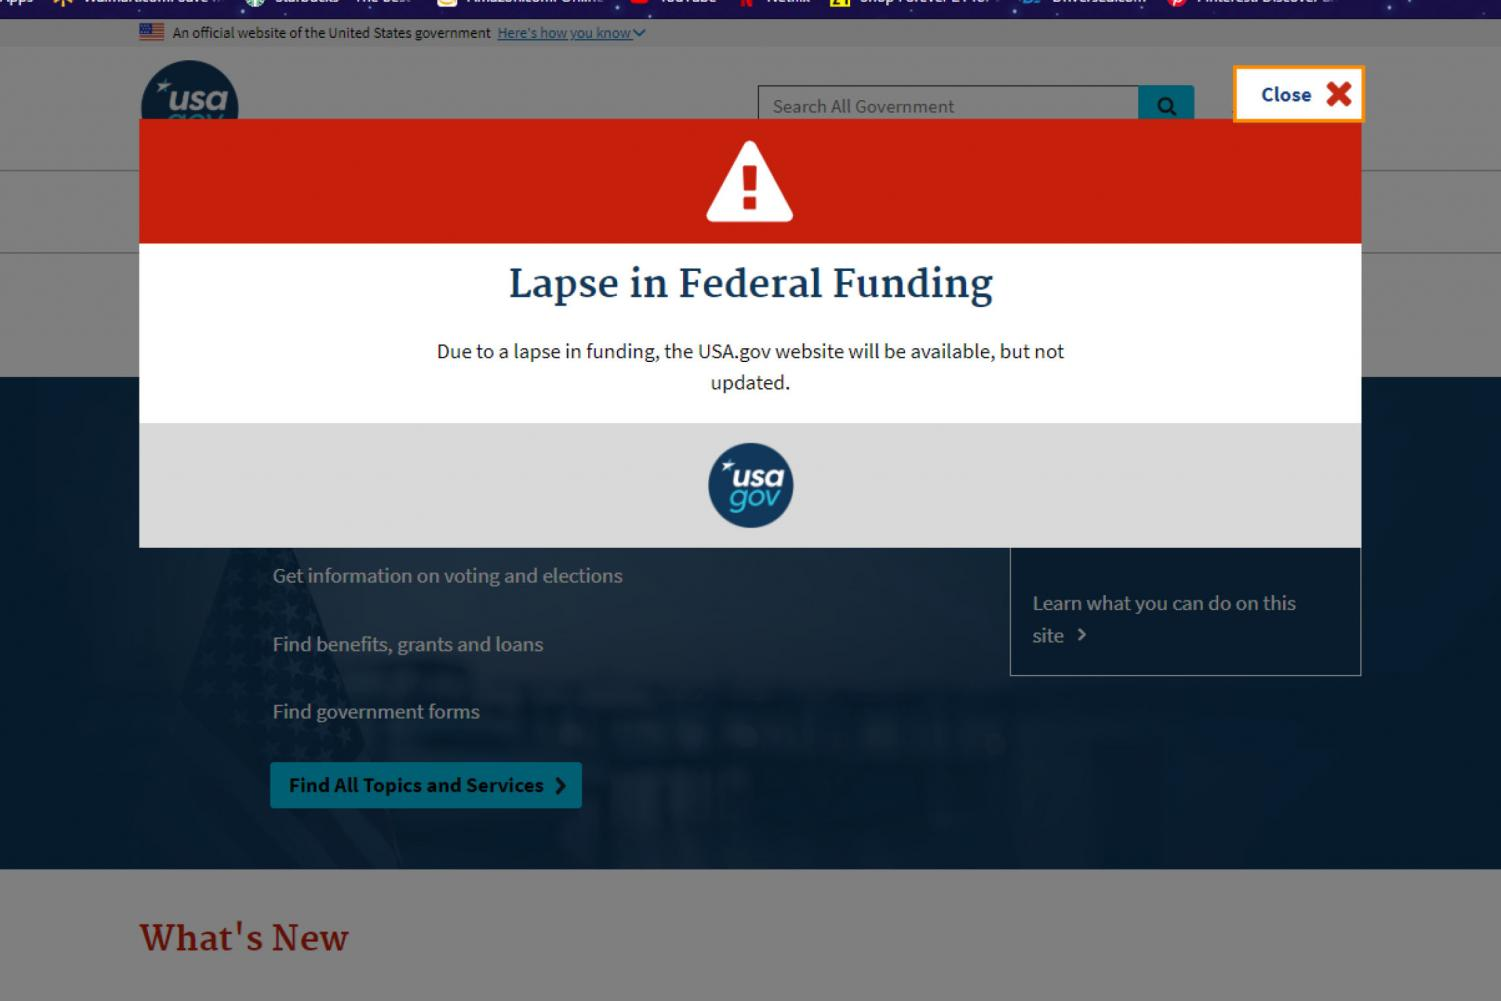 Those interested in finding information on usa.gov will find it limited by the shutdown.